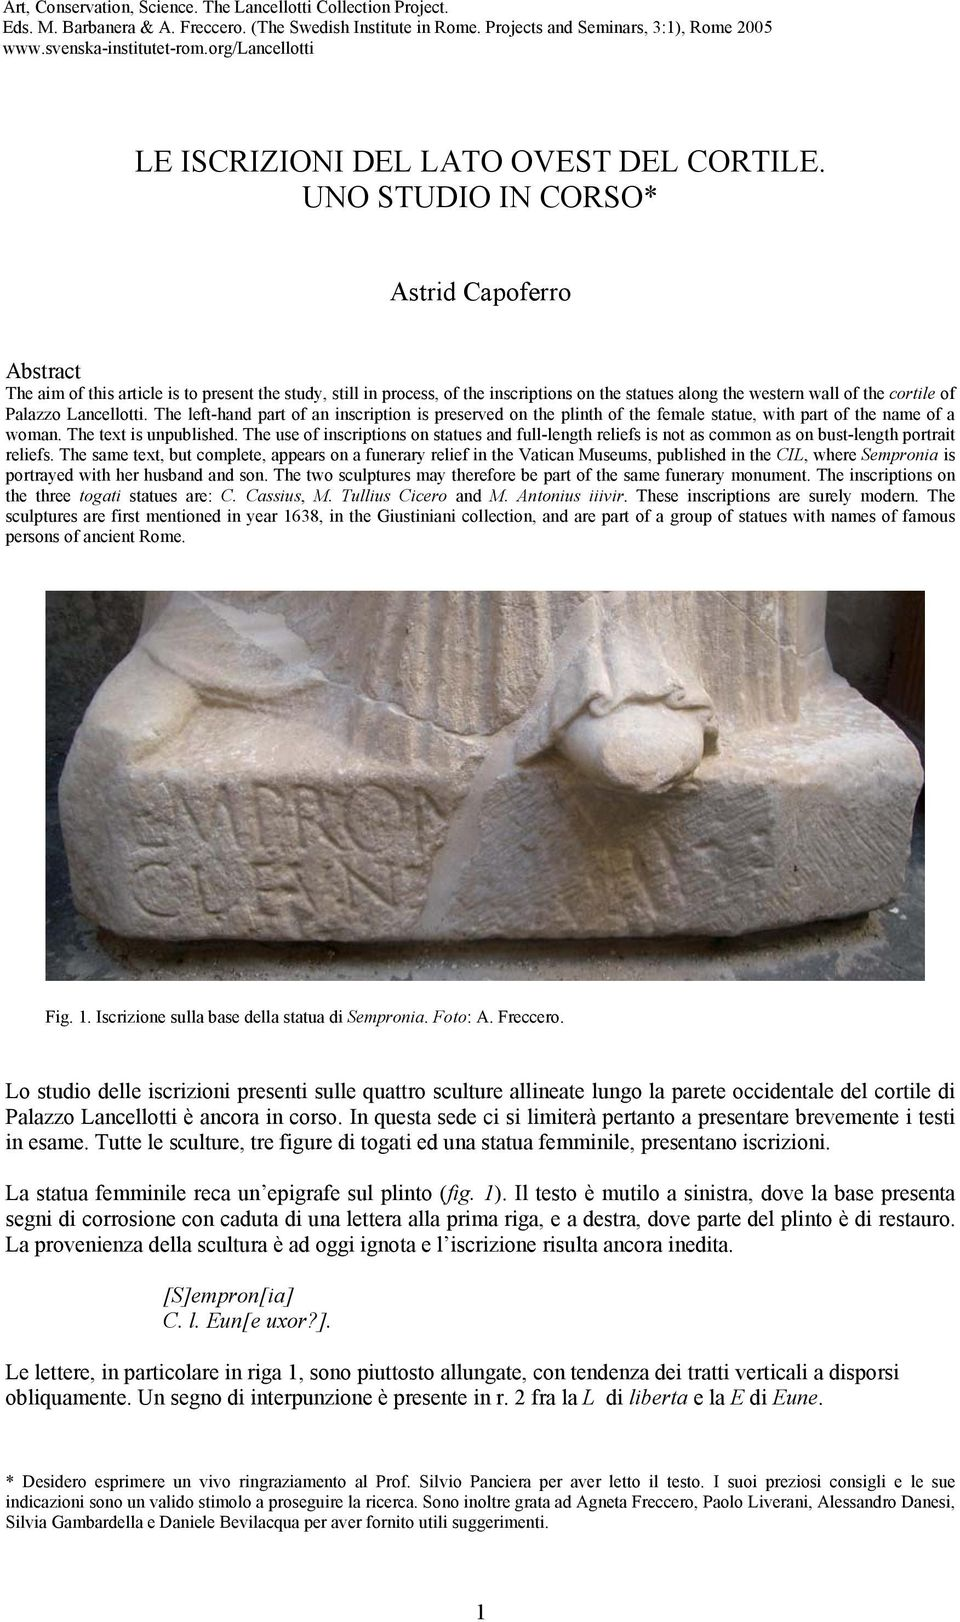 UNO STUDIO IN CORSO* Astrid Capoferro Abstract The aim of this article is to present the study, still in process, of the inscriptions on the statues along the western wall of the cortile of Palazzo